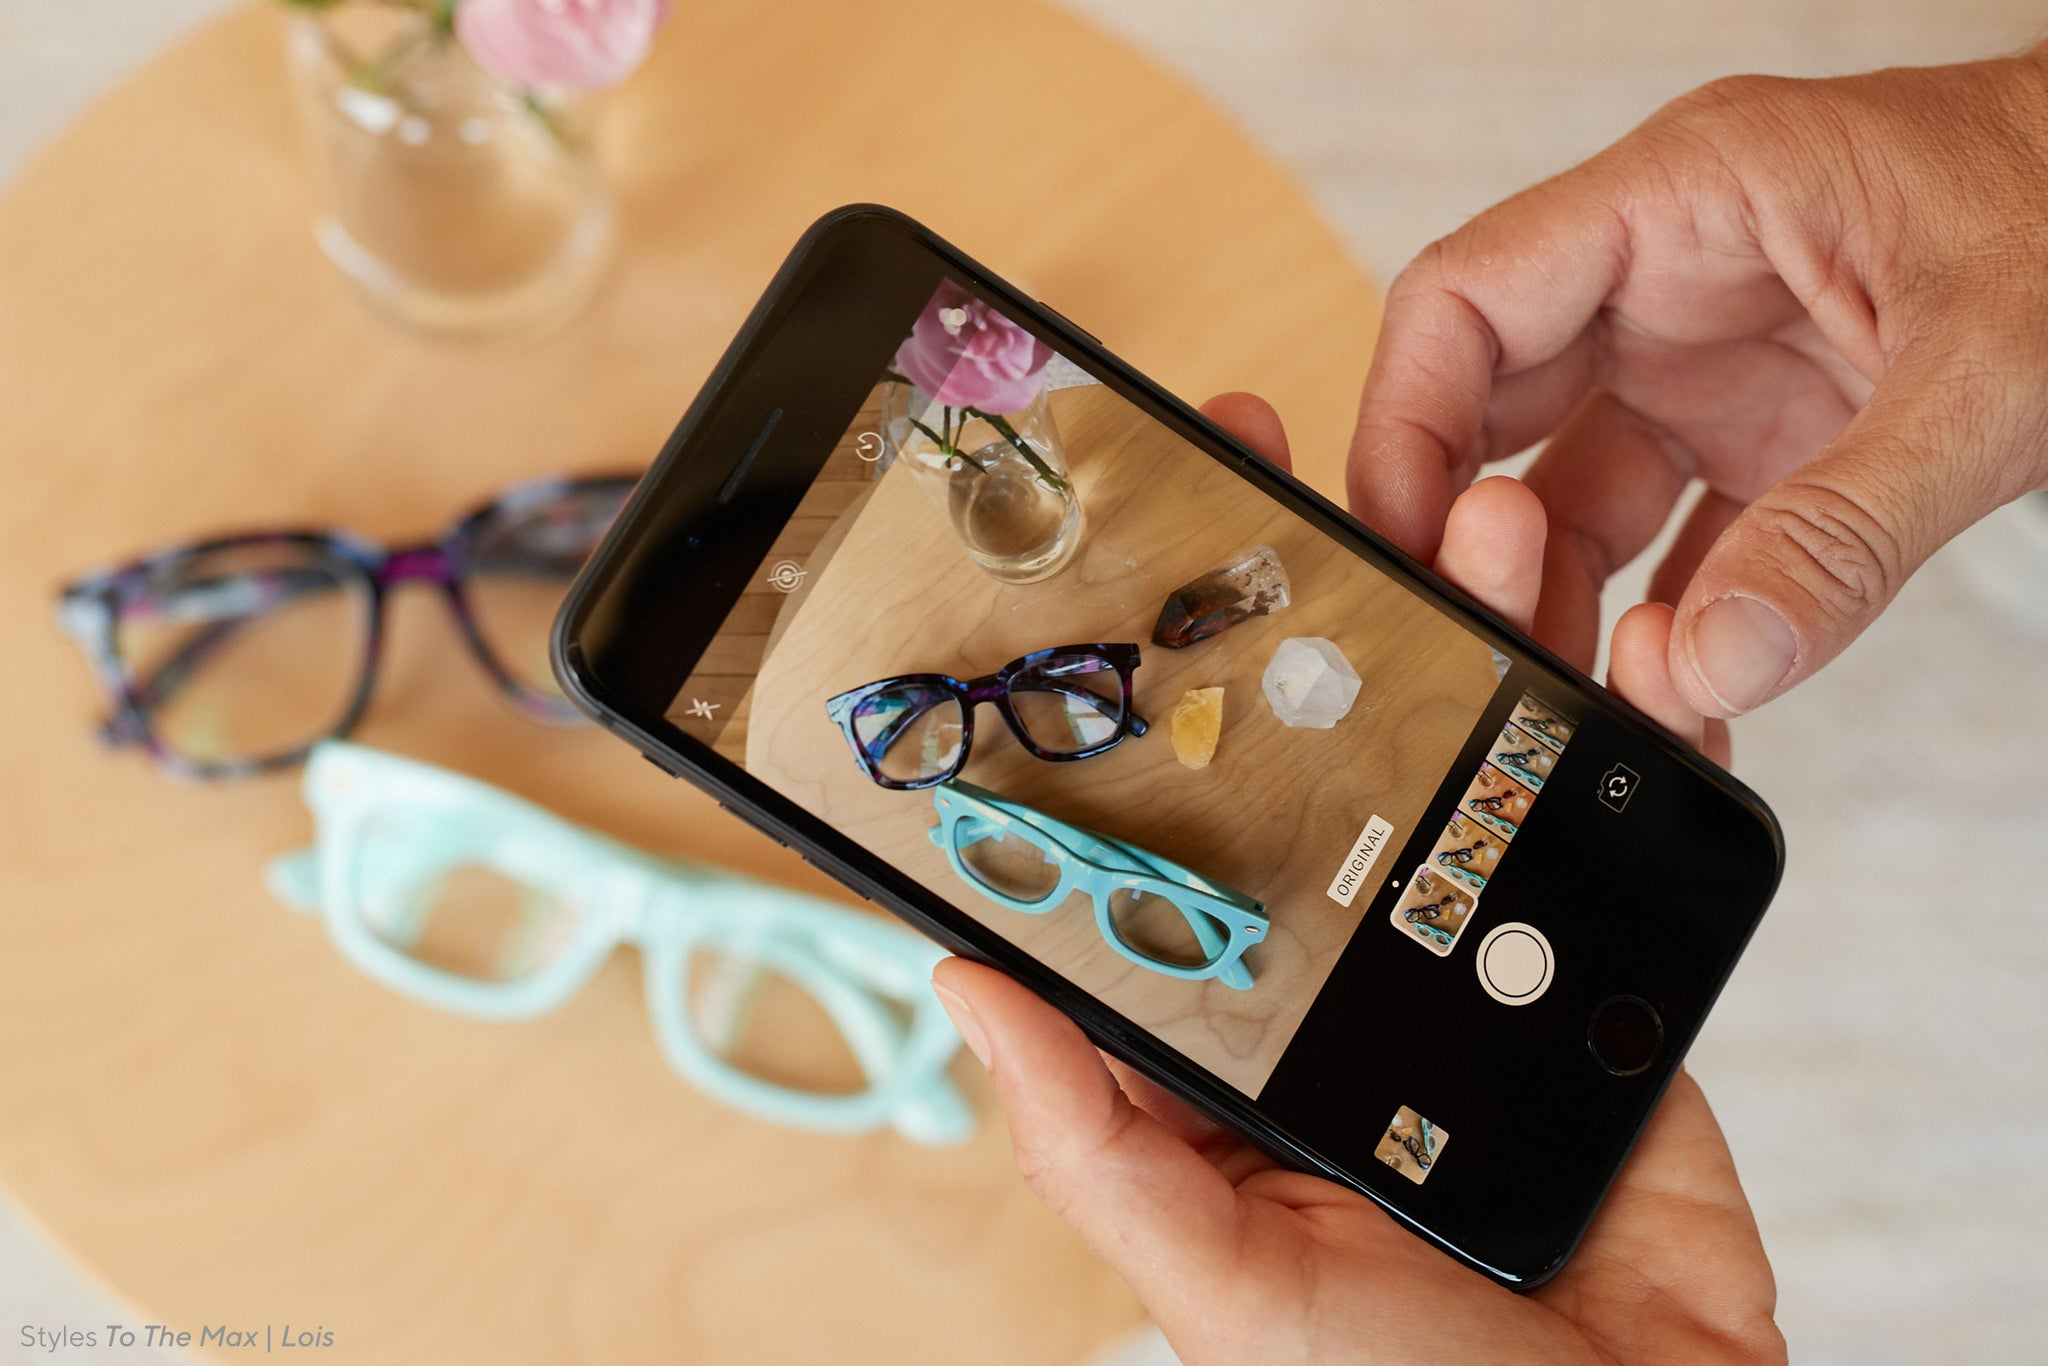 Close-up of a person's hands taking a photo of Peepers To The Max and Lois blue light reading glasses on a table